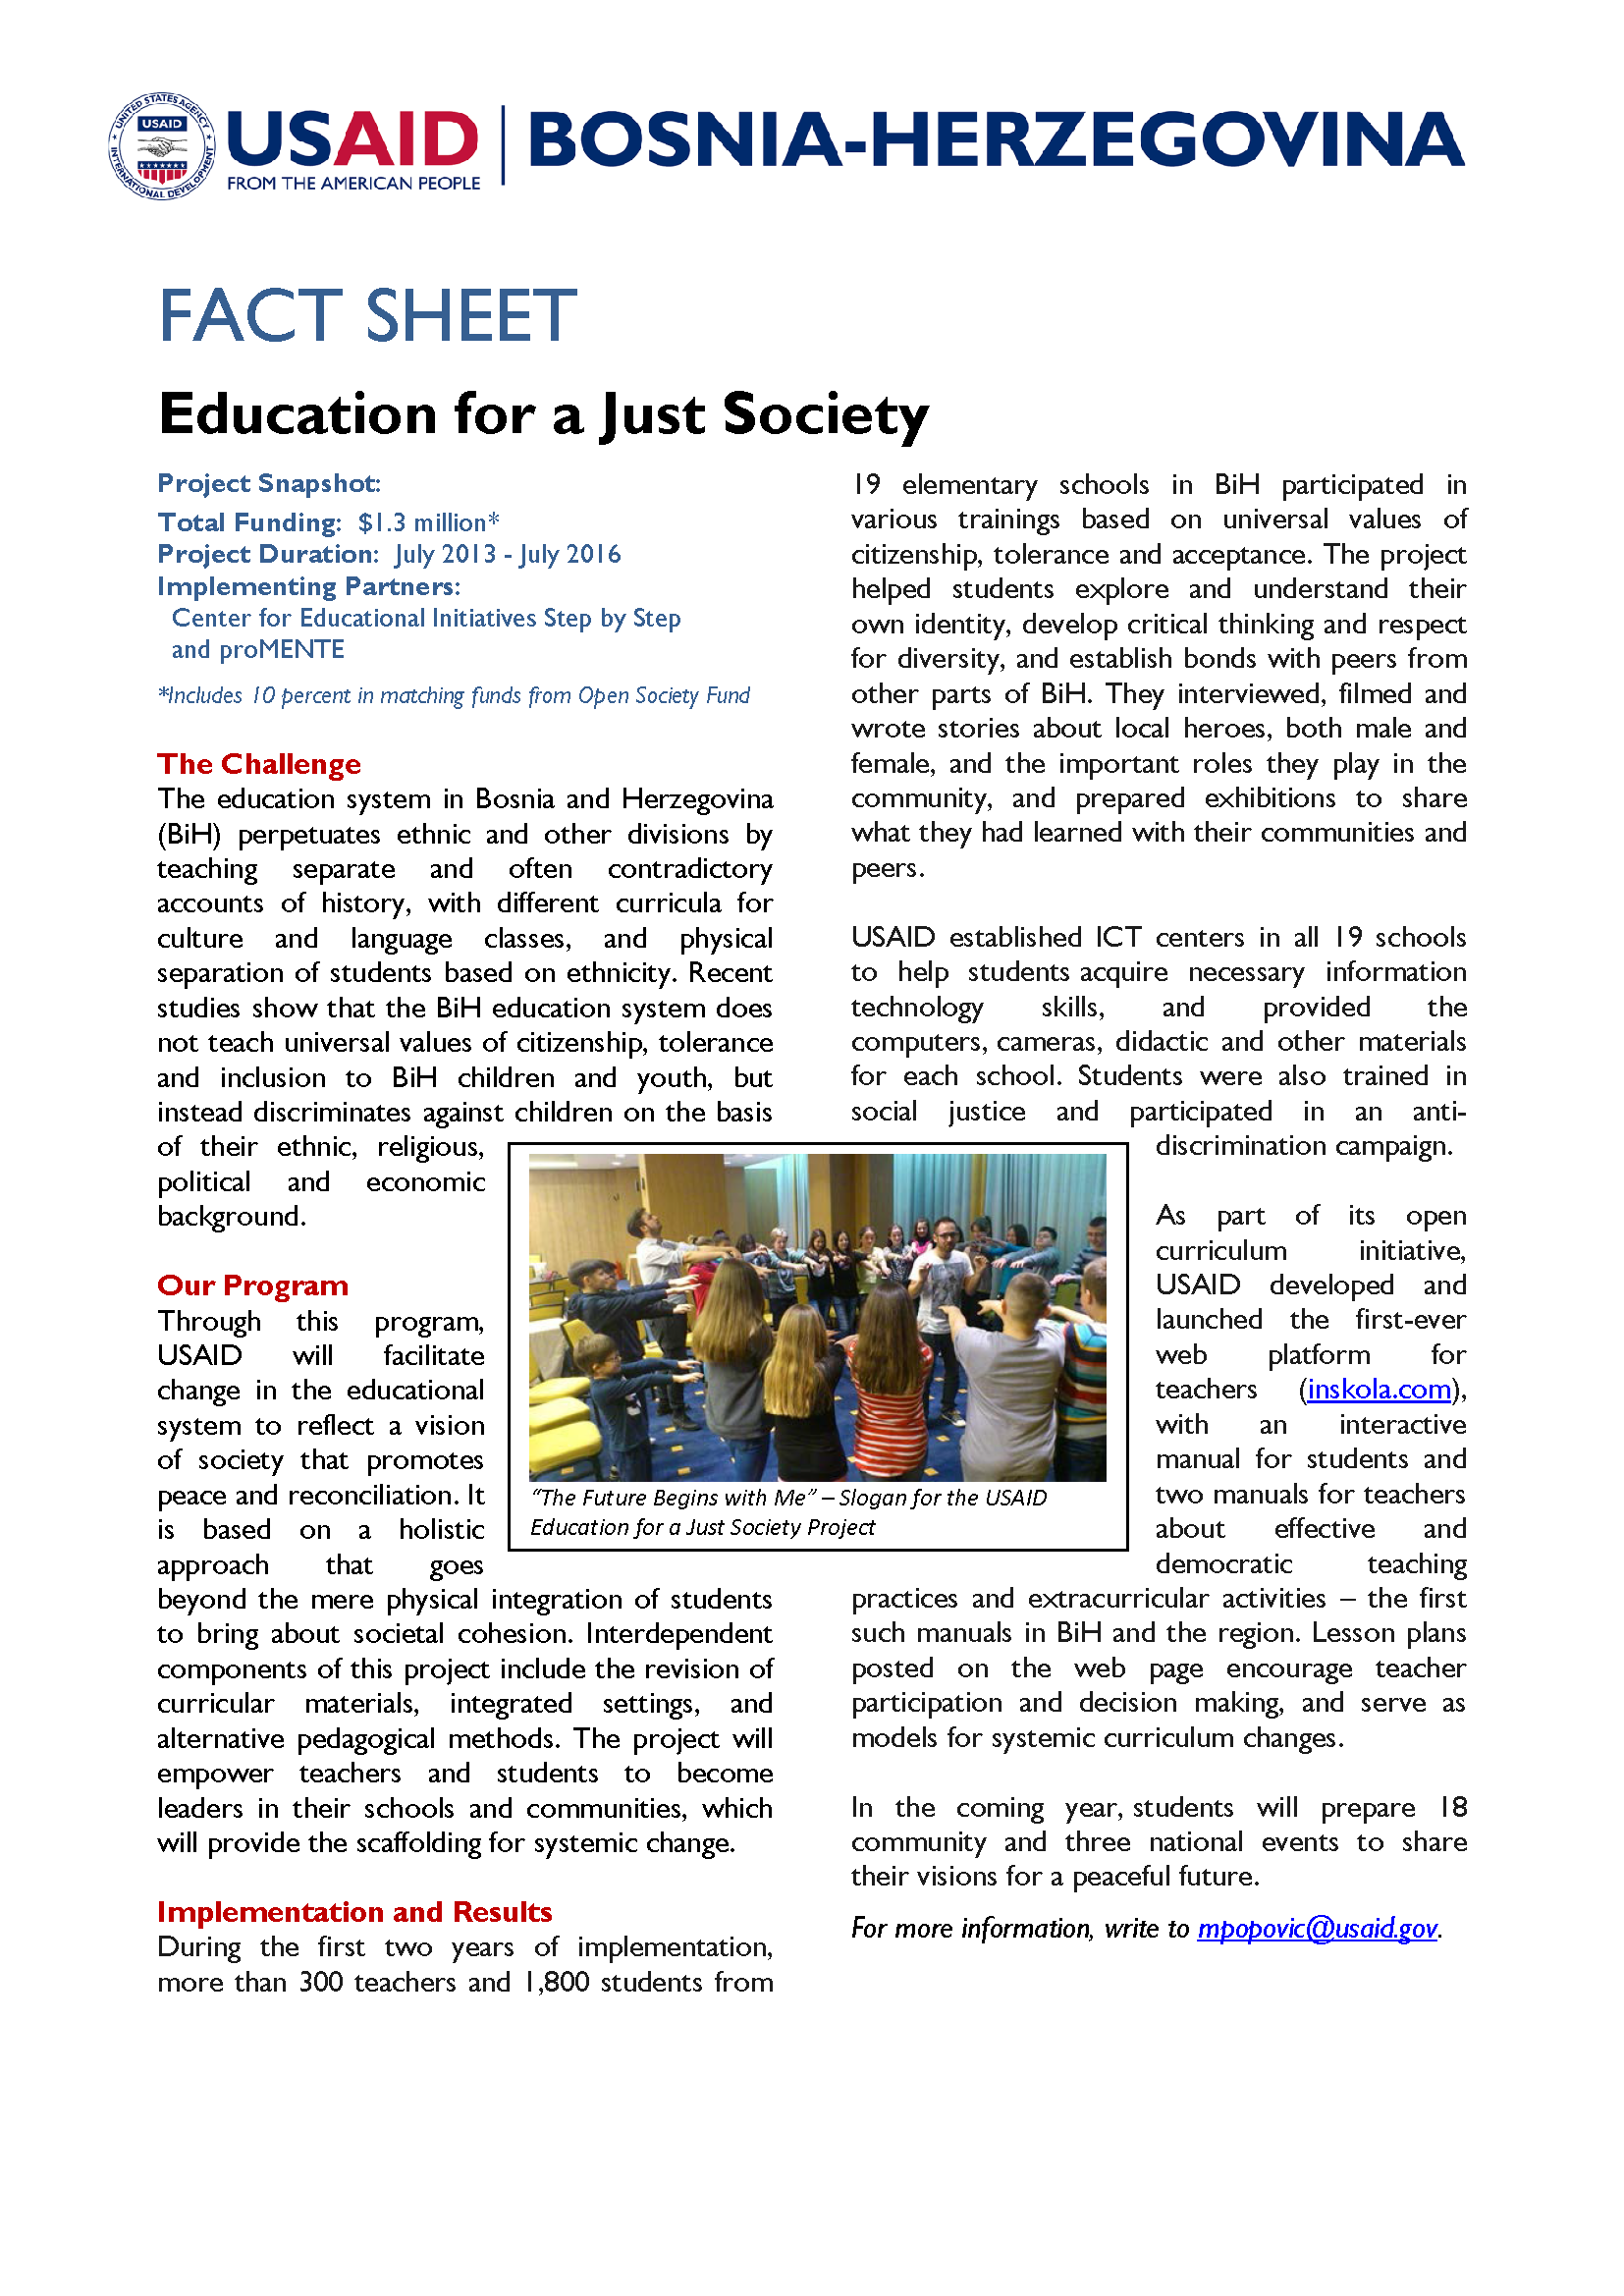 Education for a Just Society